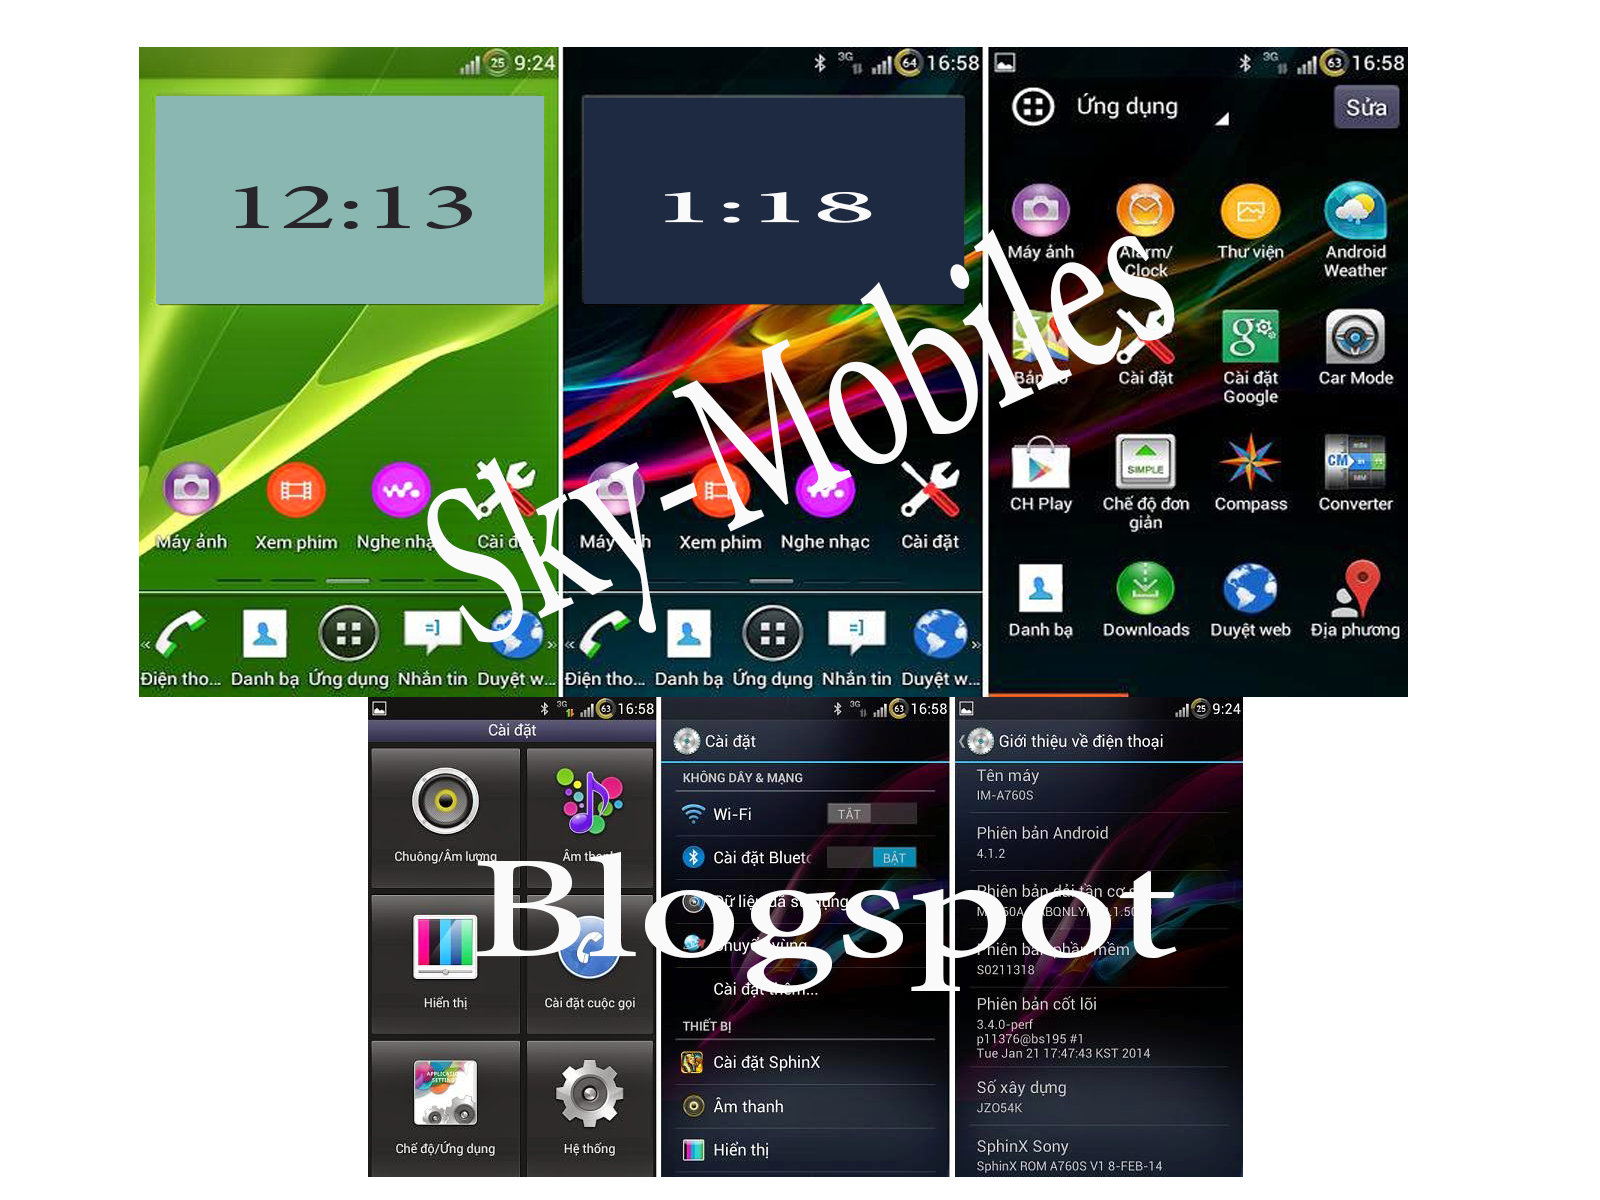 Sphinx Sony Xperia Rom For Sky 760S And 770K Stable Version